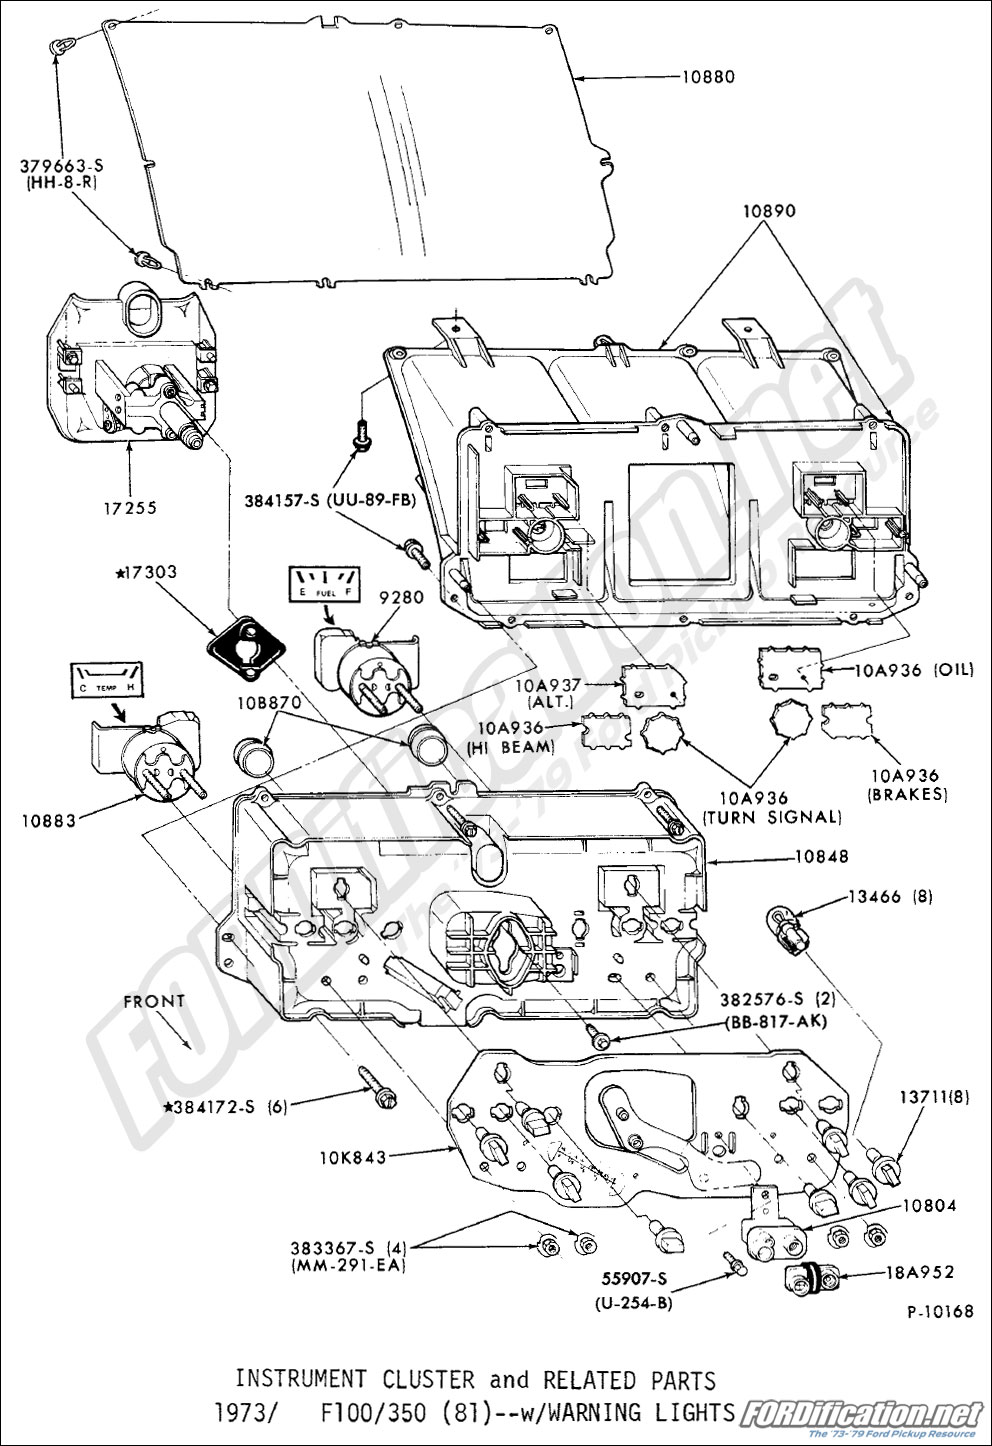 range rover l322 radio wiring diagram range rover steering column wiring diagram 64 1 2 mustang turn signal issue auto electrical wiring